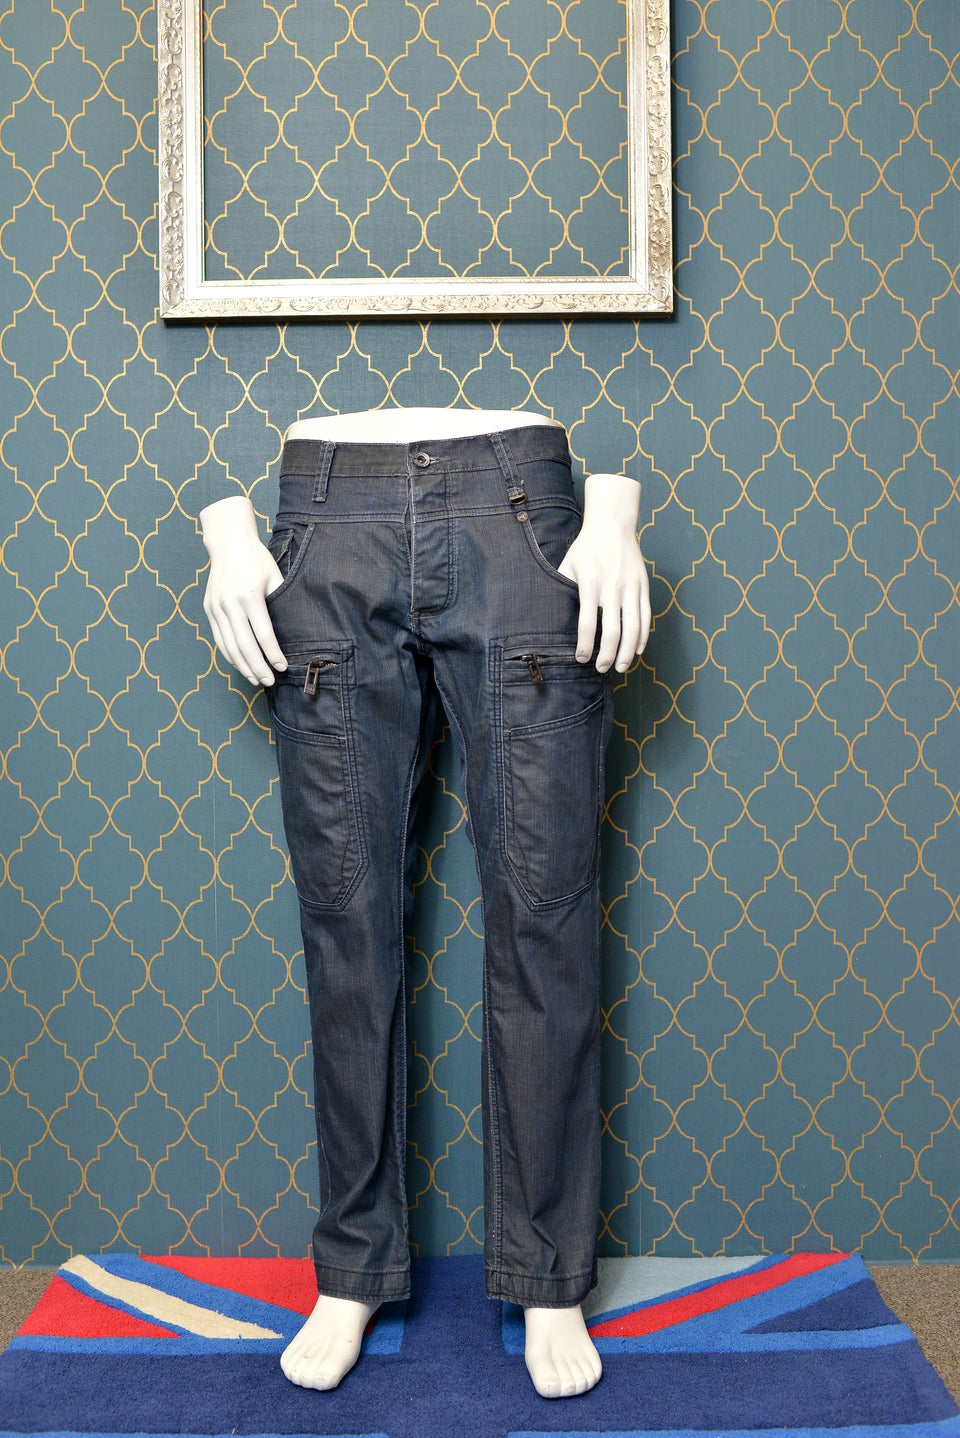 POLICE 883 Men's Jeans, Size 34 x 30. Pre-Loved